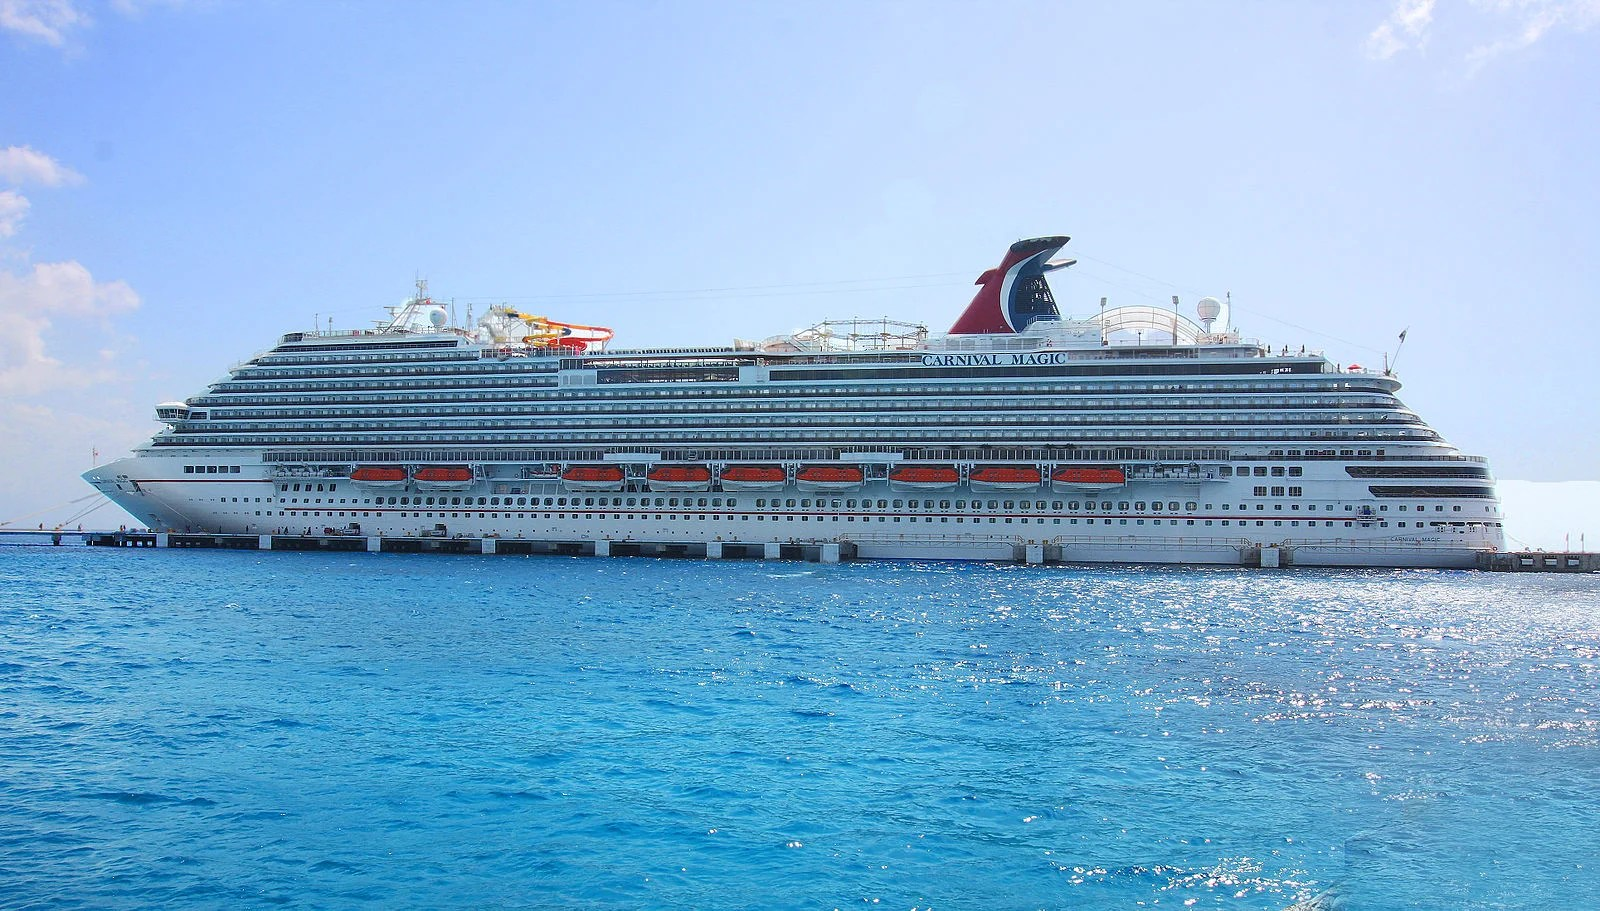 Jet Skiers Narrowly Escape Encounter With Carnival Ship - Cruise ship magic